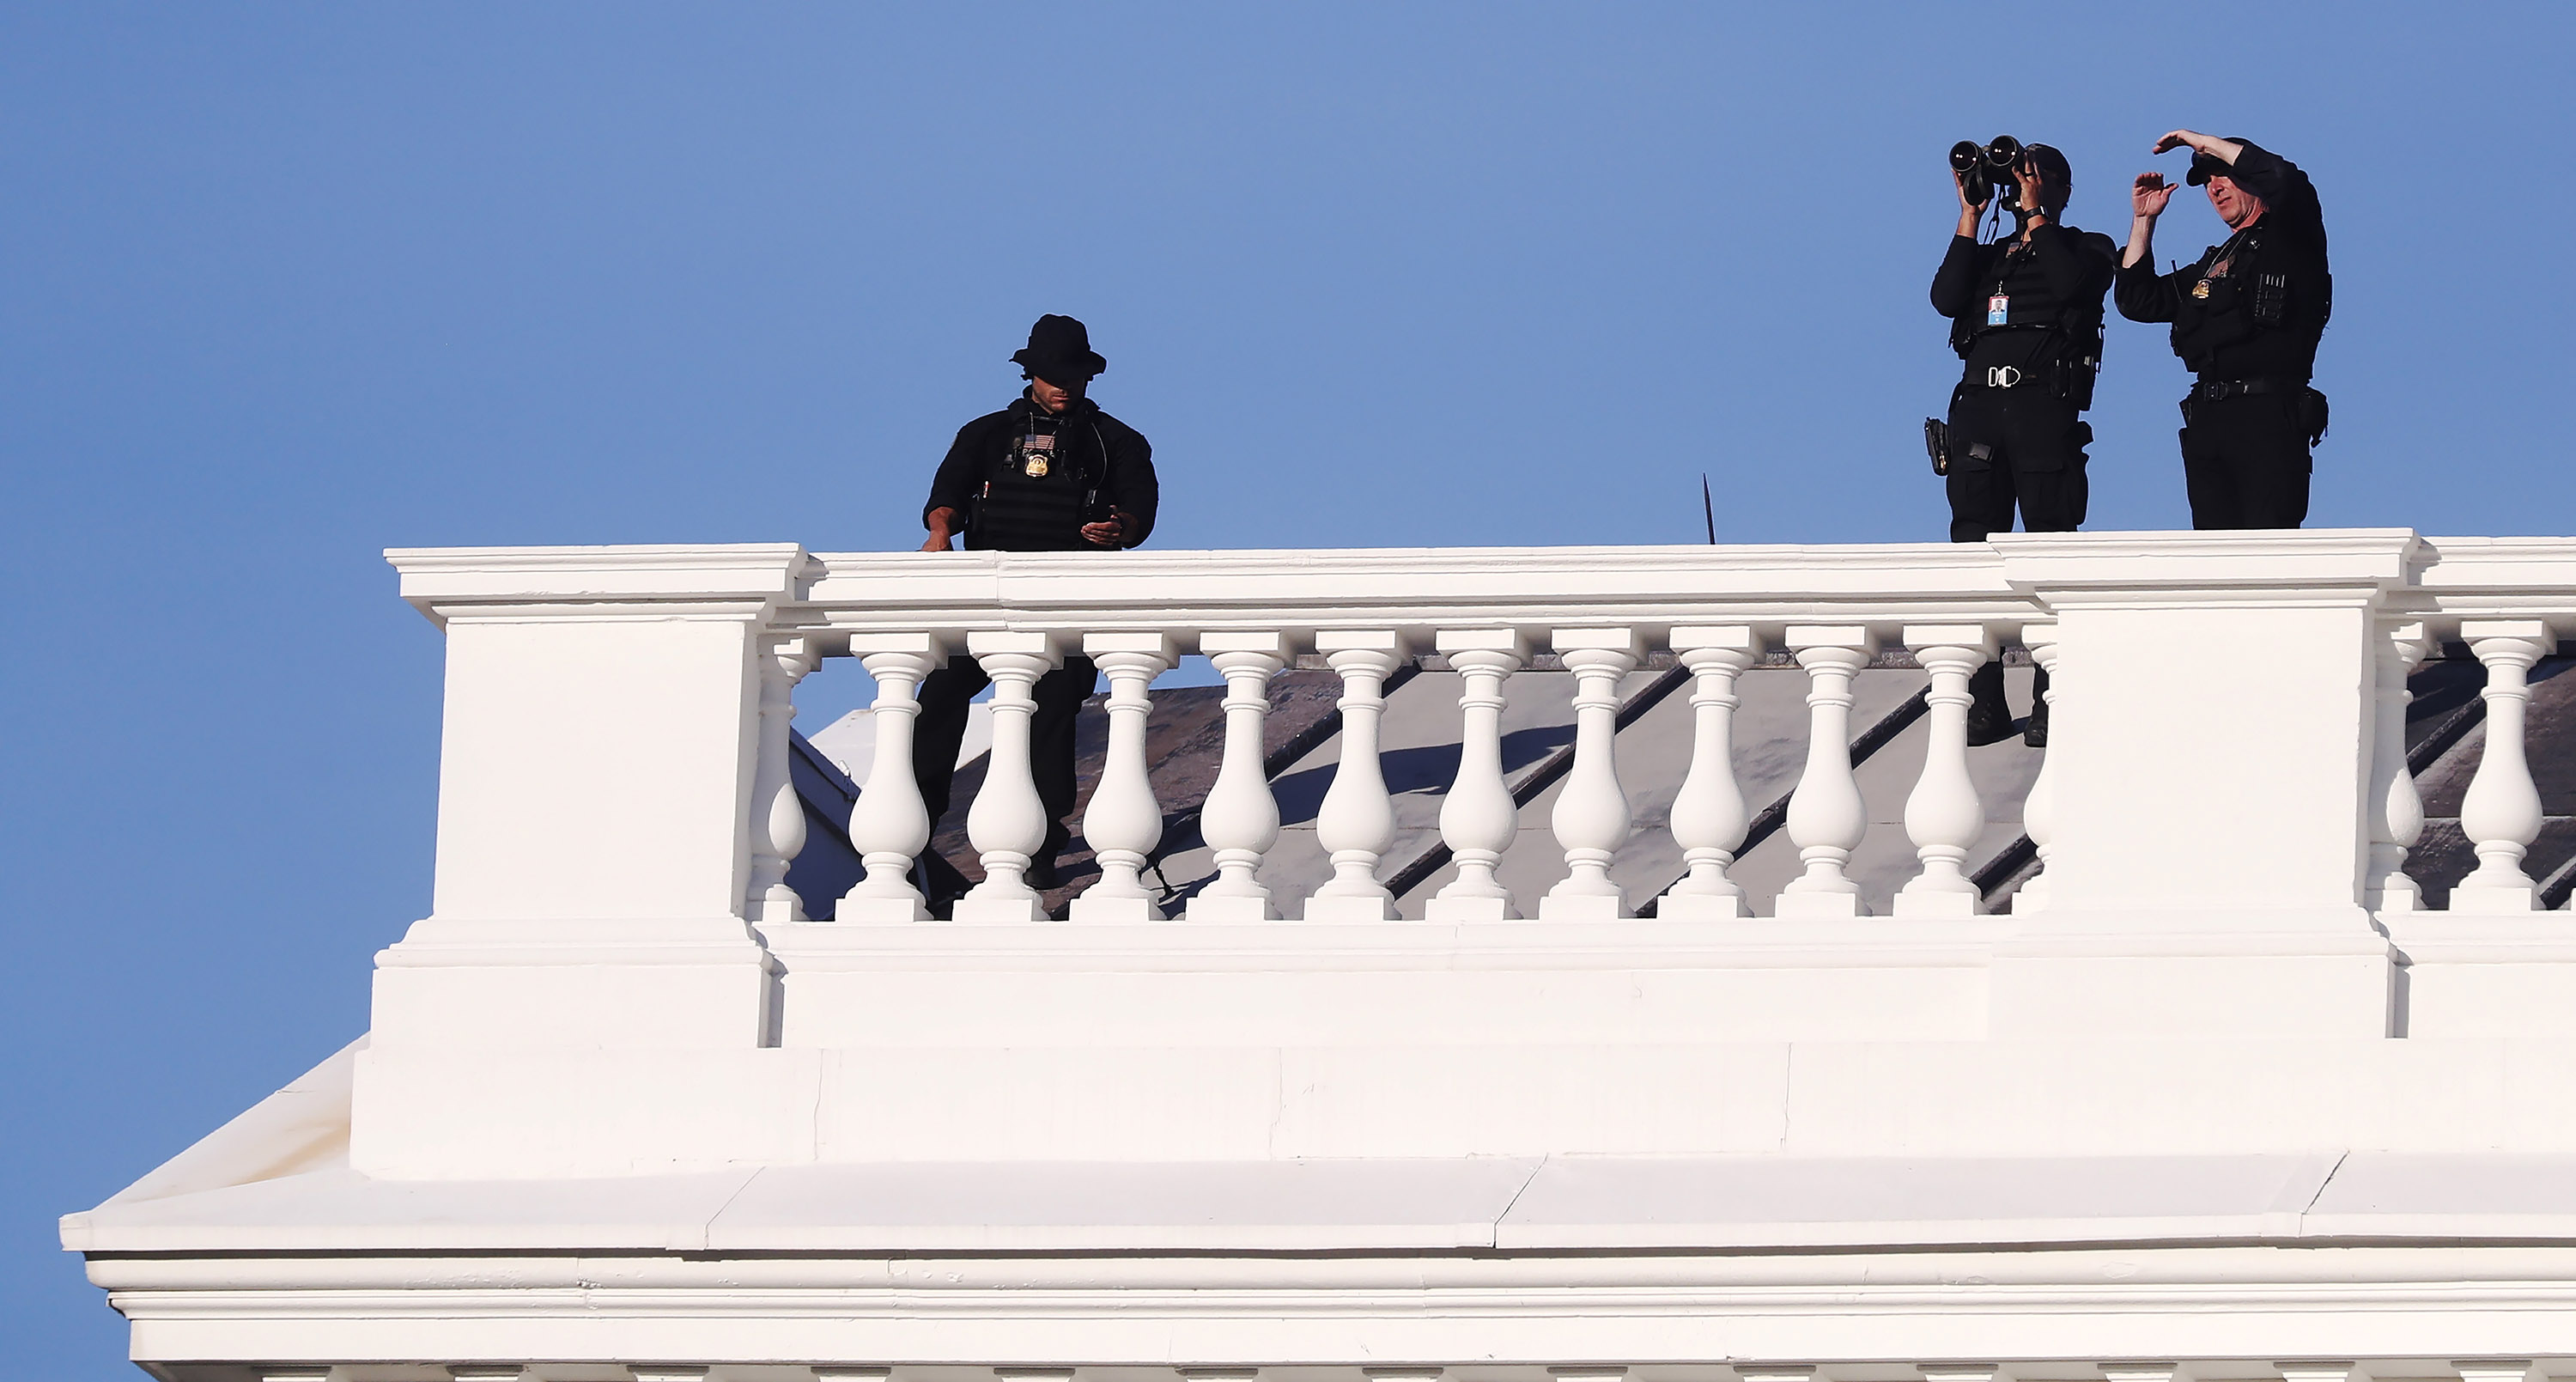 U.S. Secret Service Agents positioned atop of the White House as U.S. President Donald Trump returns from St. John's Episcopal Church in Washington, D.C., on Monday, June 1.